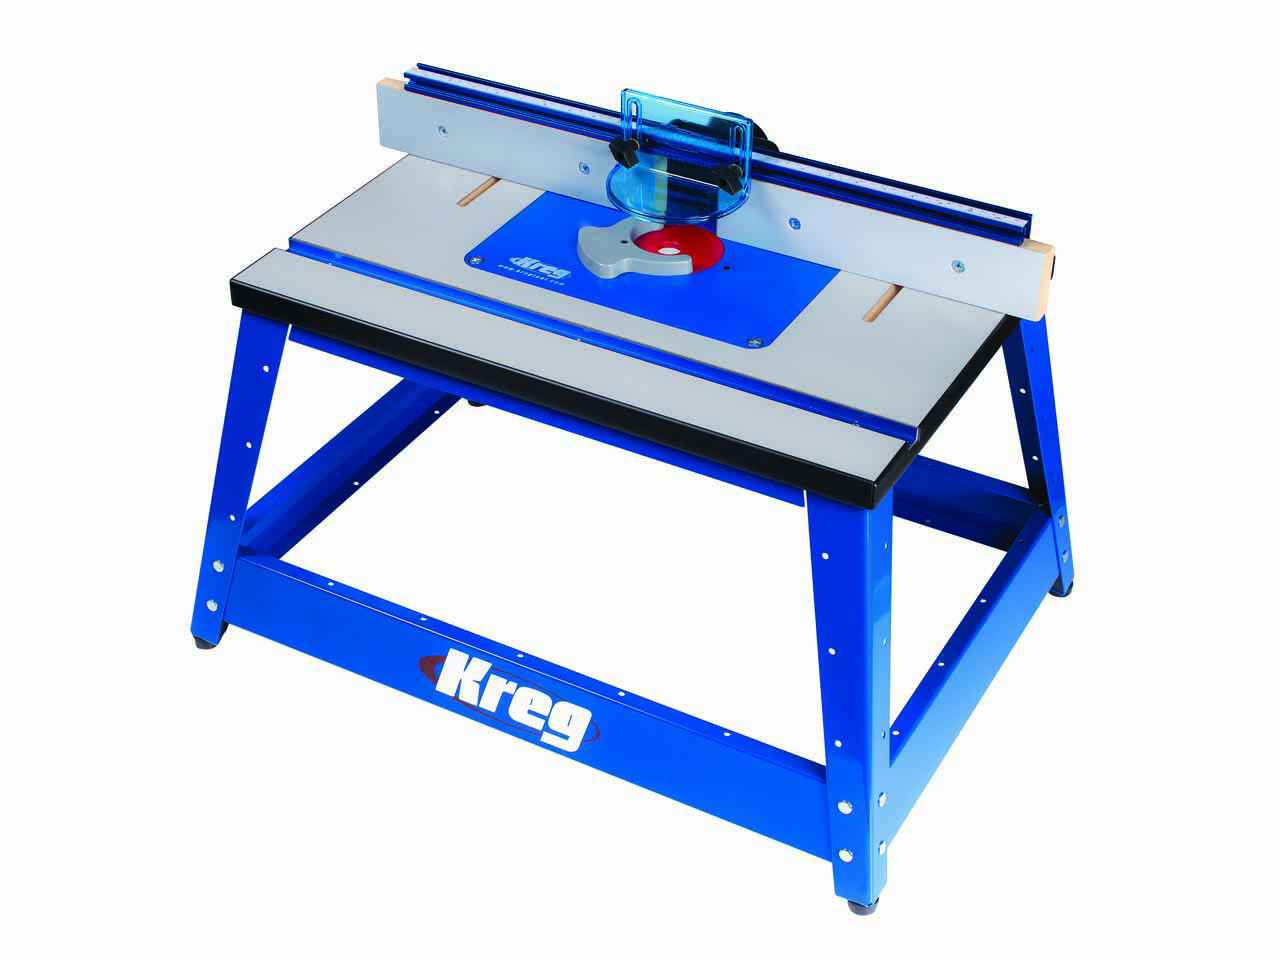 Kreg 257334 precision benchtop router table prs2100 - Kreg router table accessories ...